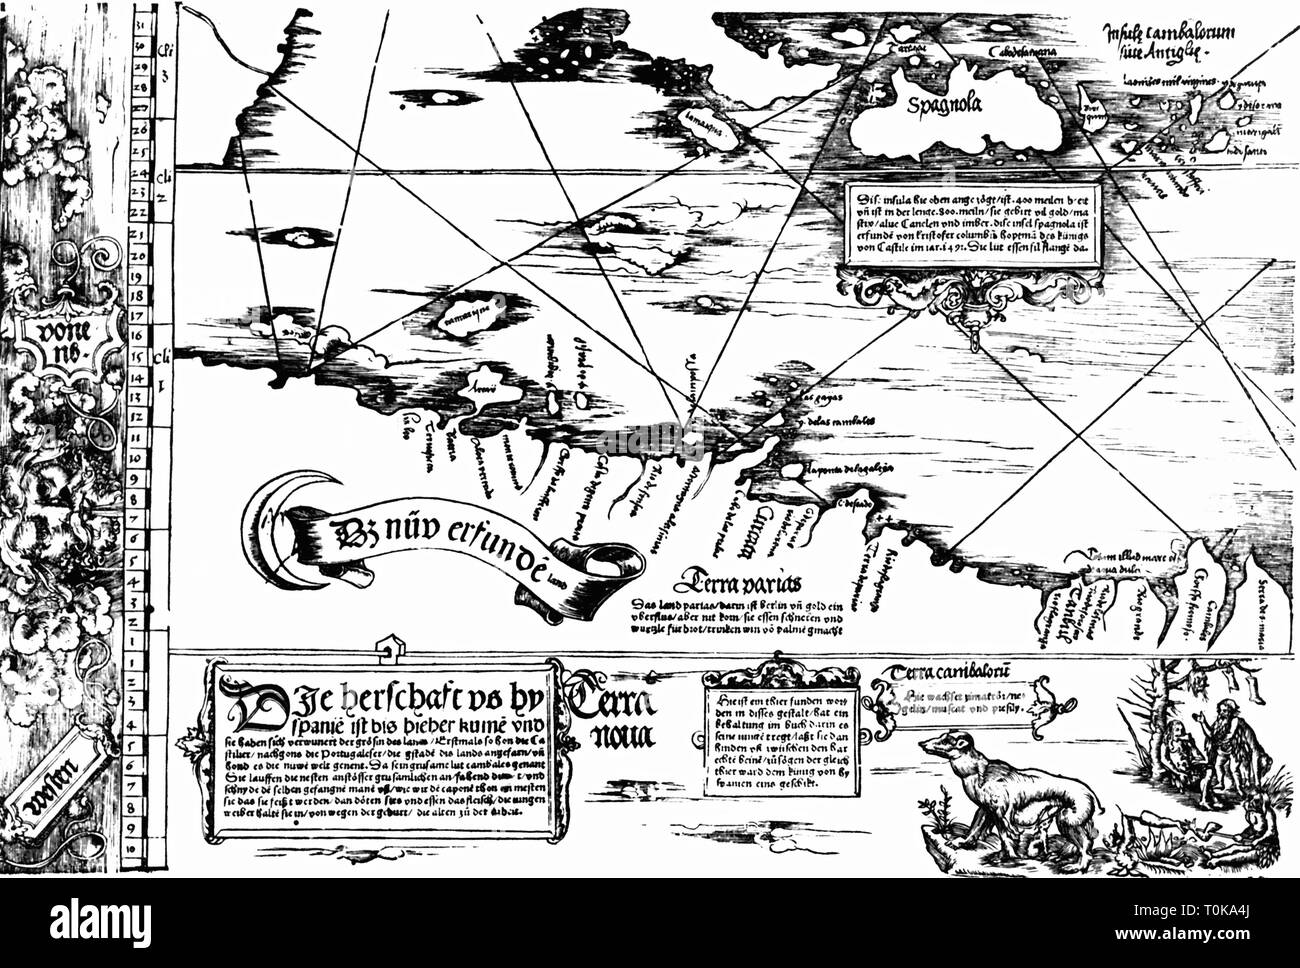 cartography, map, Caribbean and north coast of Venezuela, 'Carta Marina Navigatoria Portugallensis', detail, woodcut, Germany, 1525, Additional-Rights-Clearance-Info-Not-Available - Stock Image